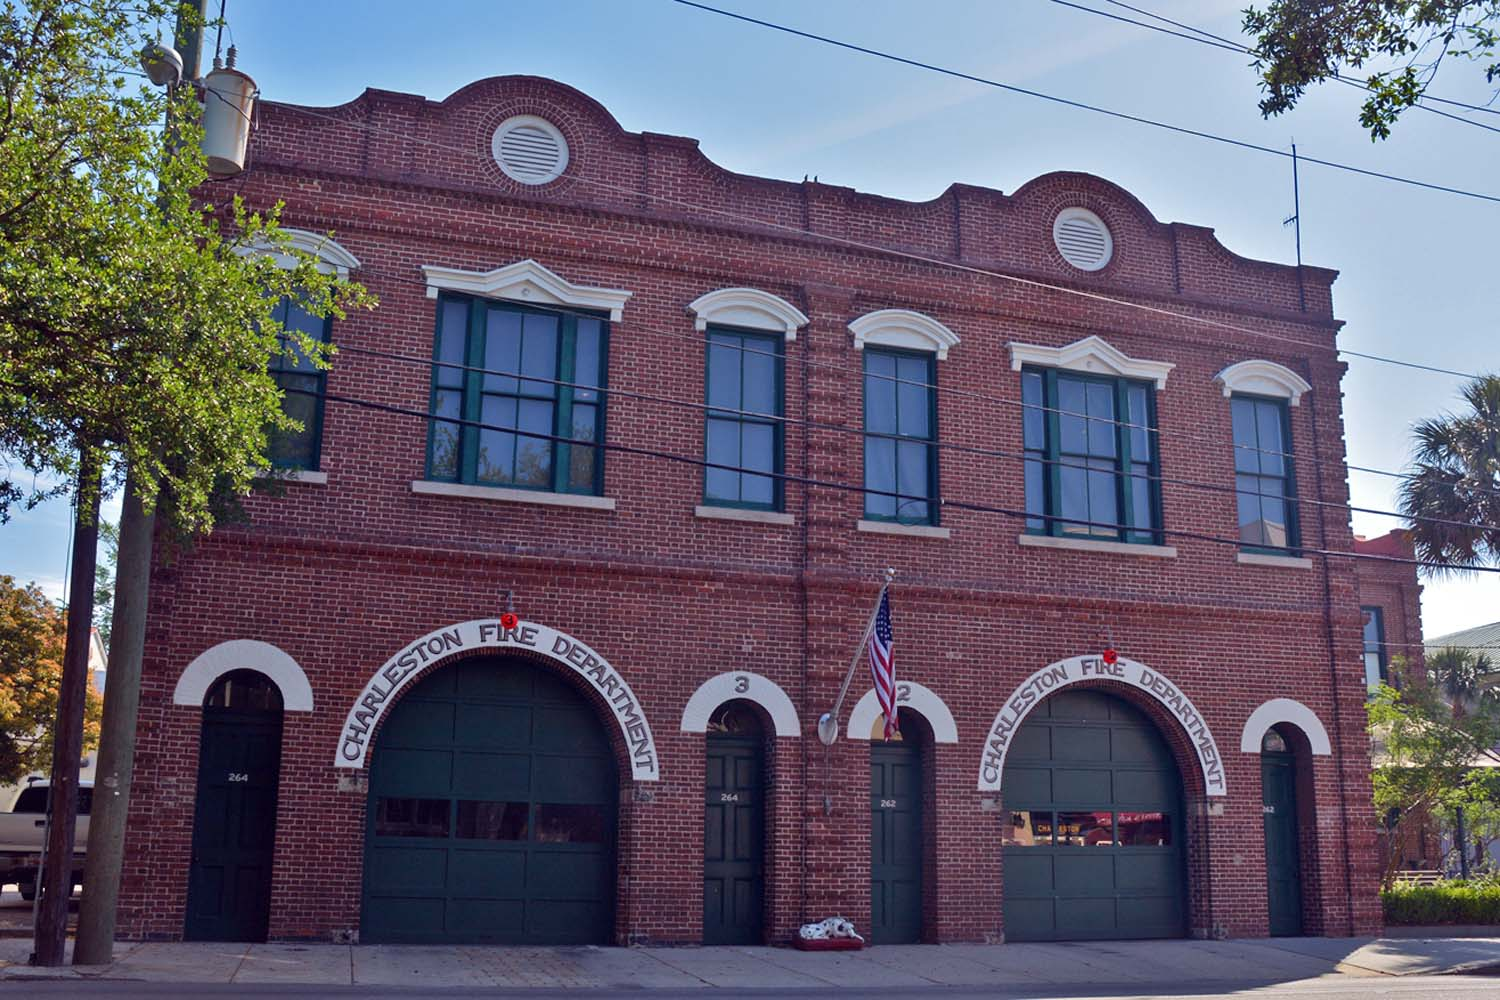 Charleston historic firestation